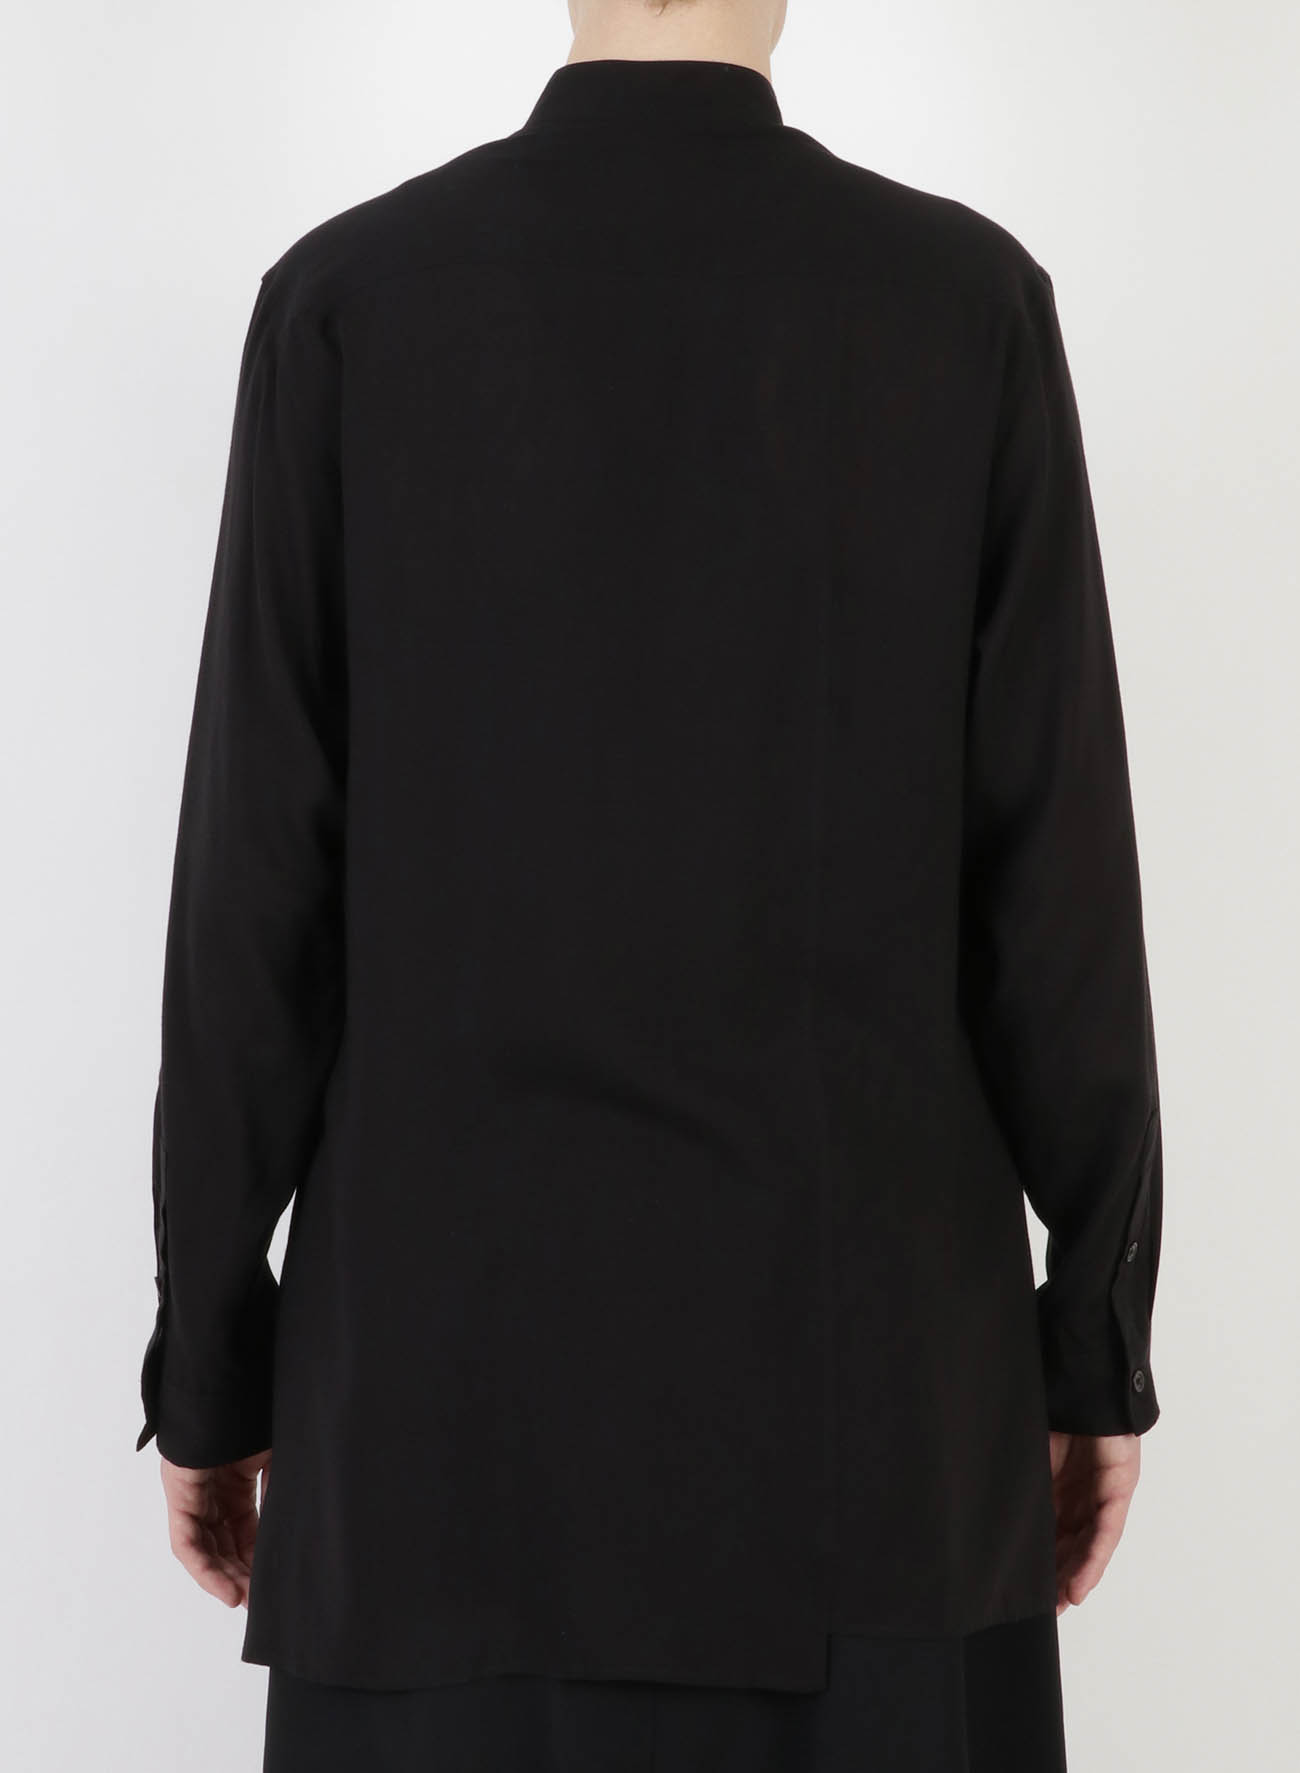 CELLULOSE LAWN UNEVEN STAND COLLAR BLOUSE